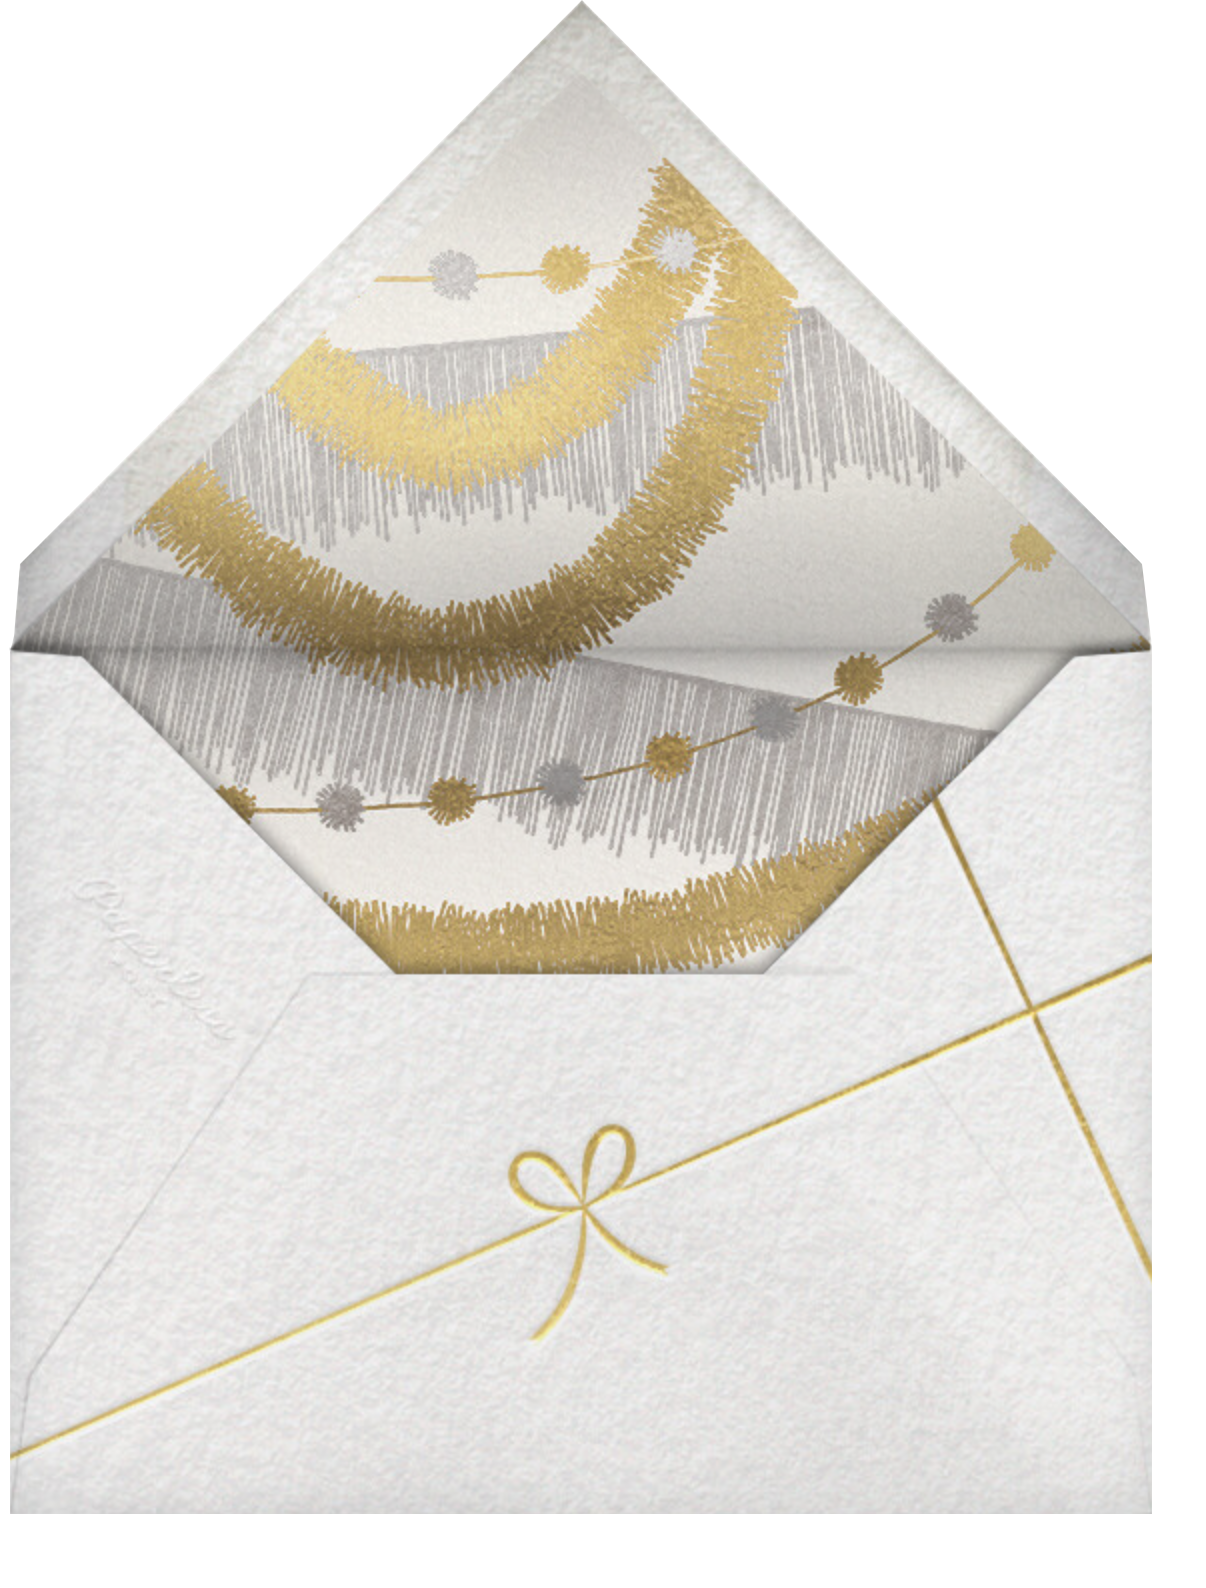 Christmas Finestra (Tall) - White/Gold - Paperless Post - Holiday party - envelope back